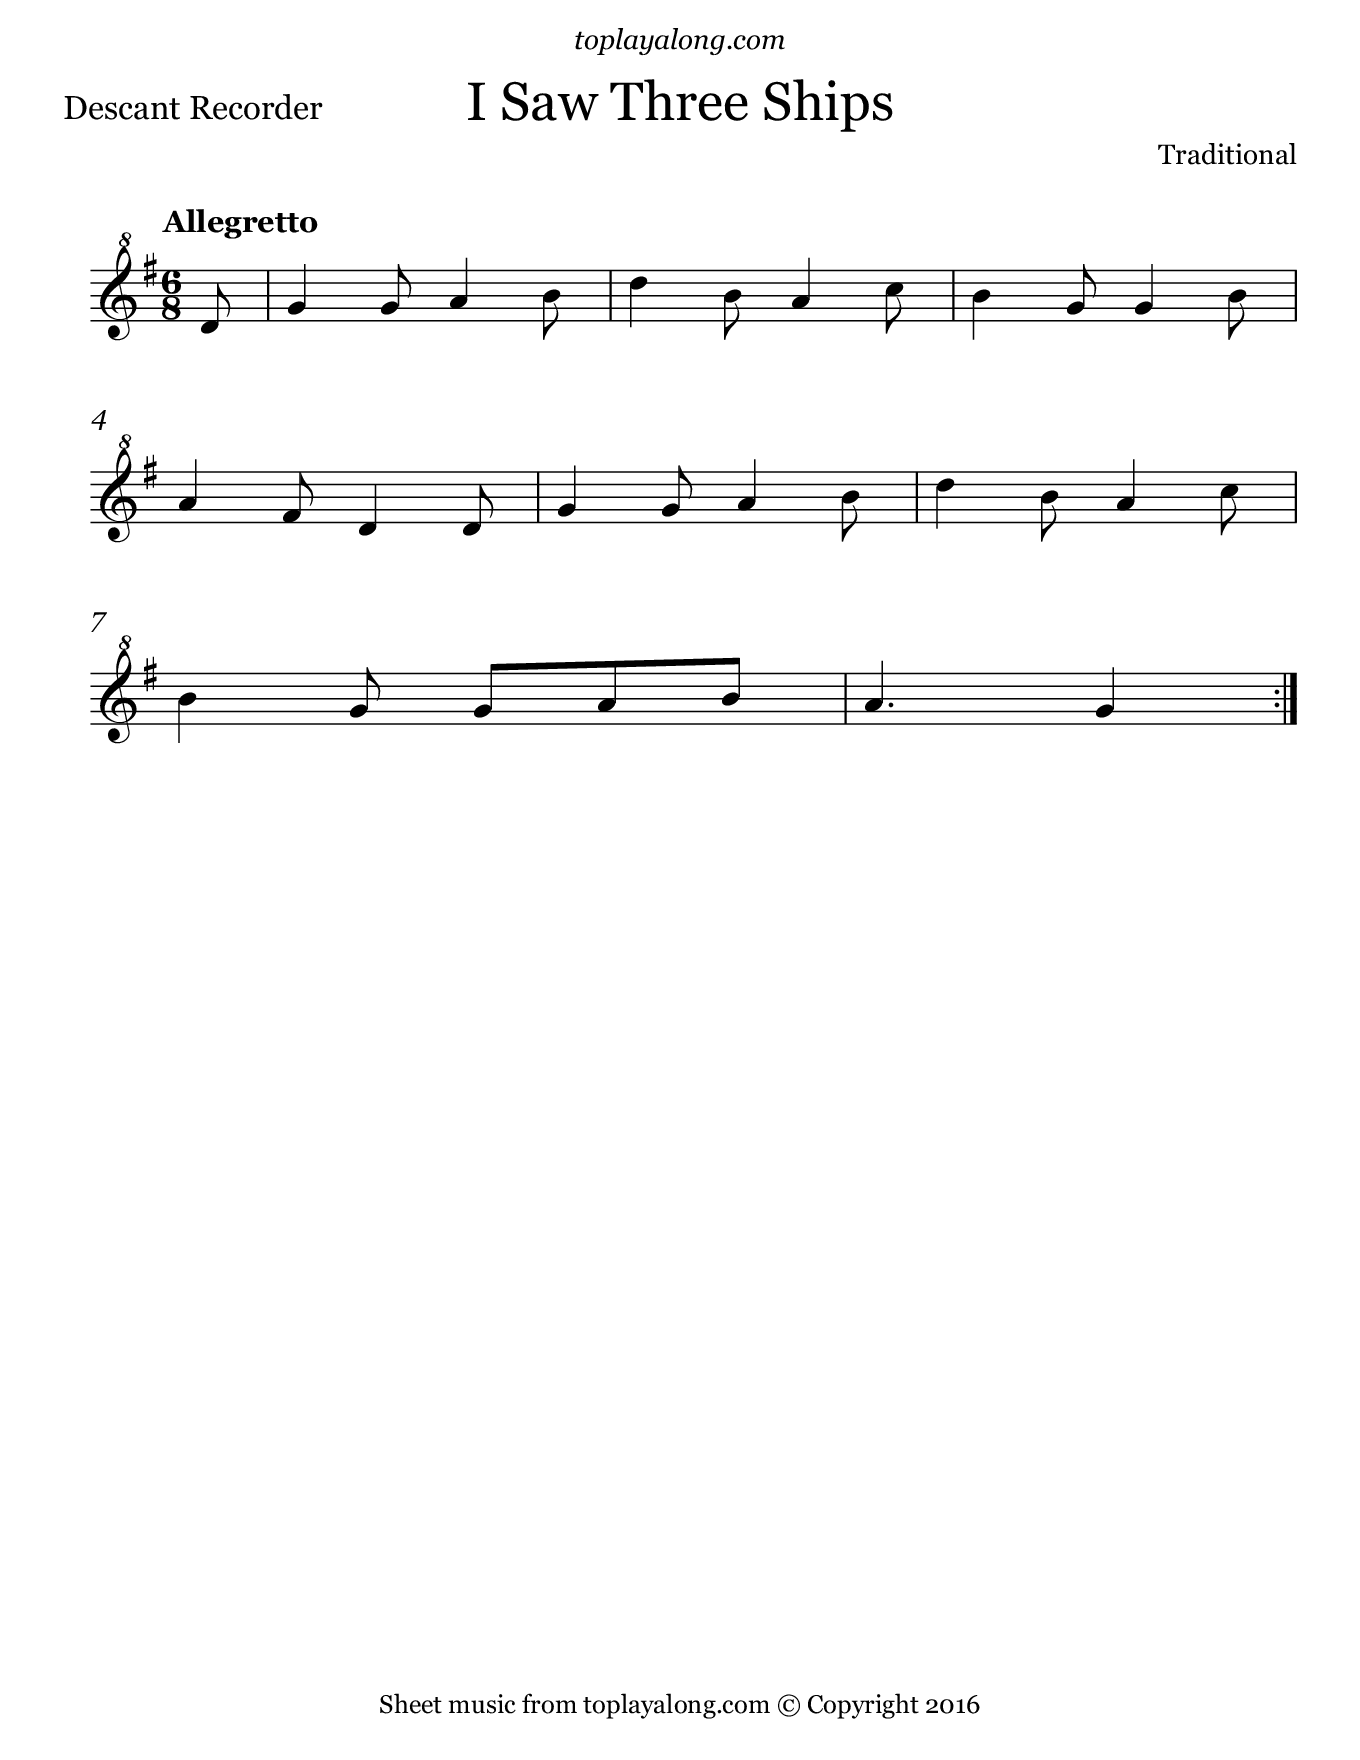 I Saw Three Ships. Sheet music for Recorder, page 1.